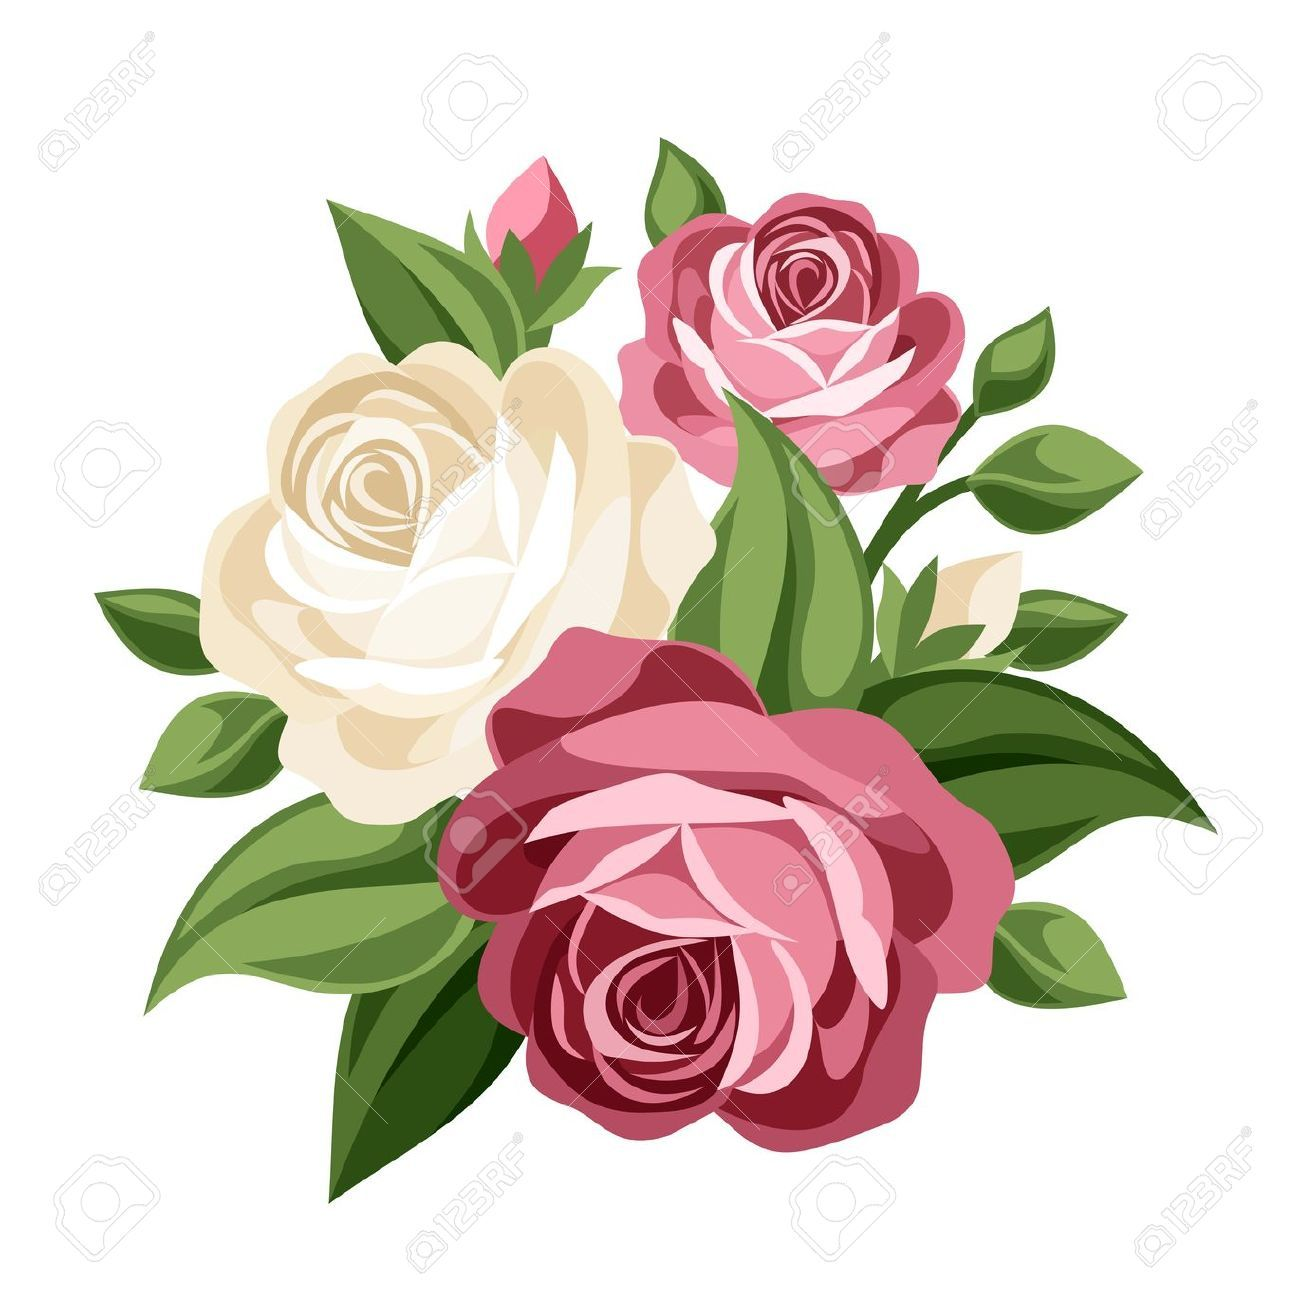 Rose Stock Photos, Pictures, Royalty Free Rose Images And.